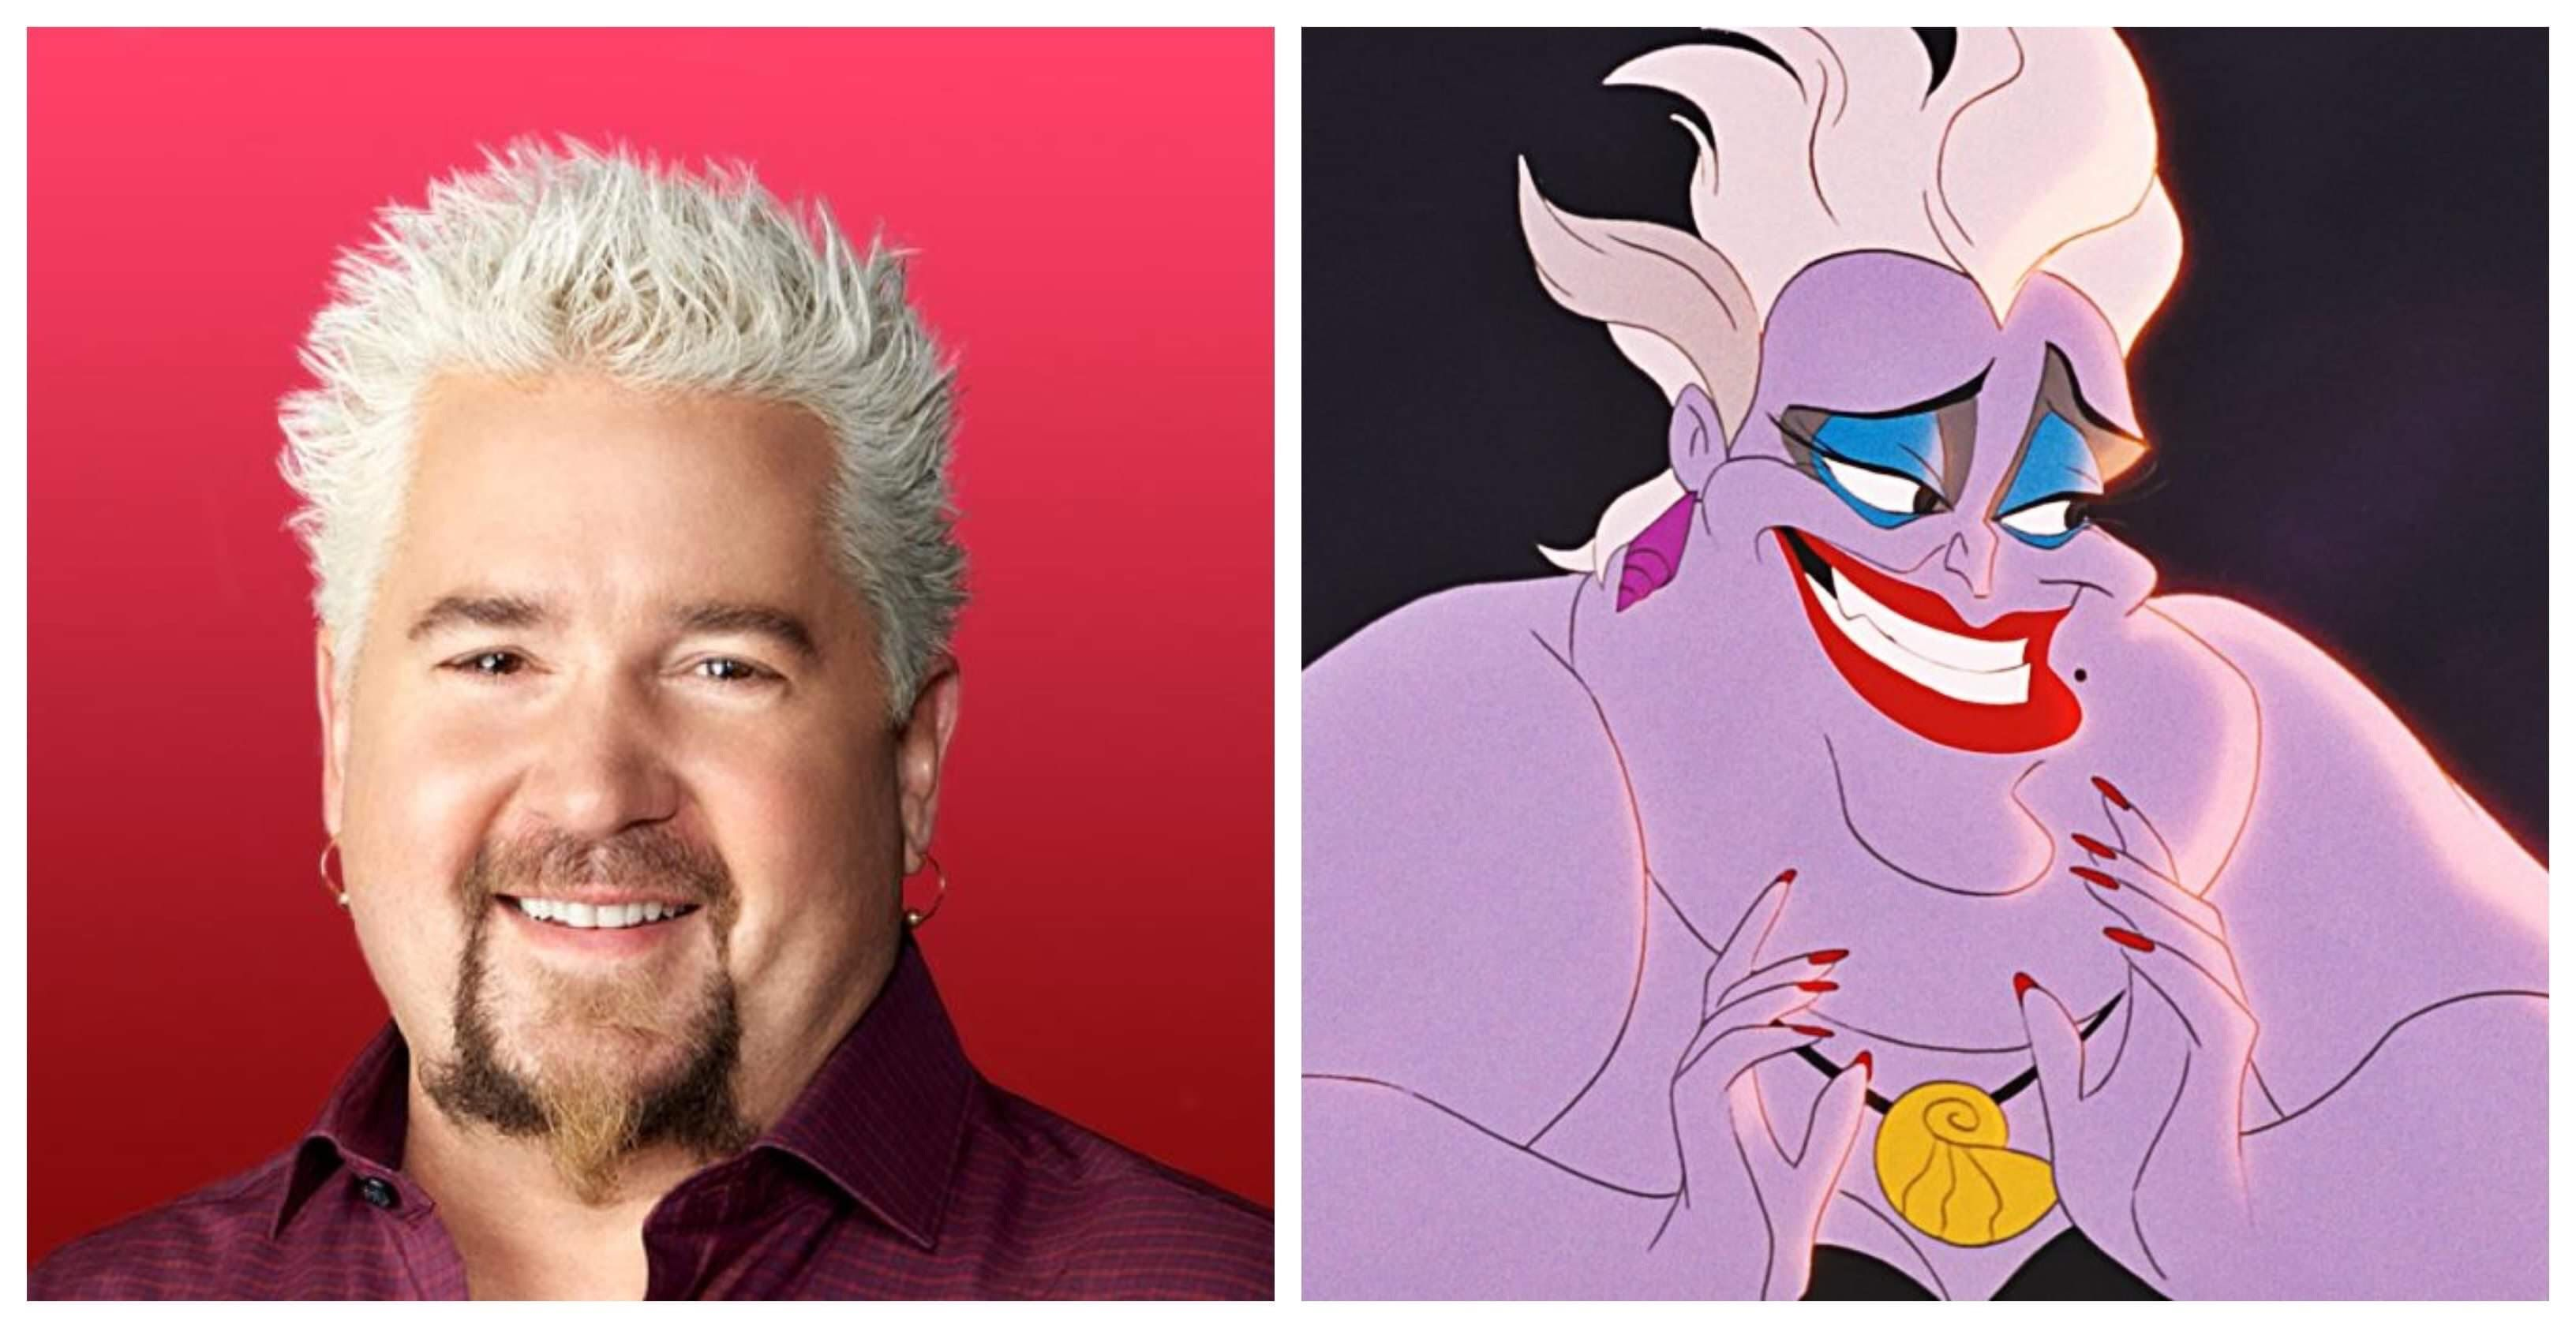 Fans Want Guy Fieri To Play Ursula In The Little Mermaid With